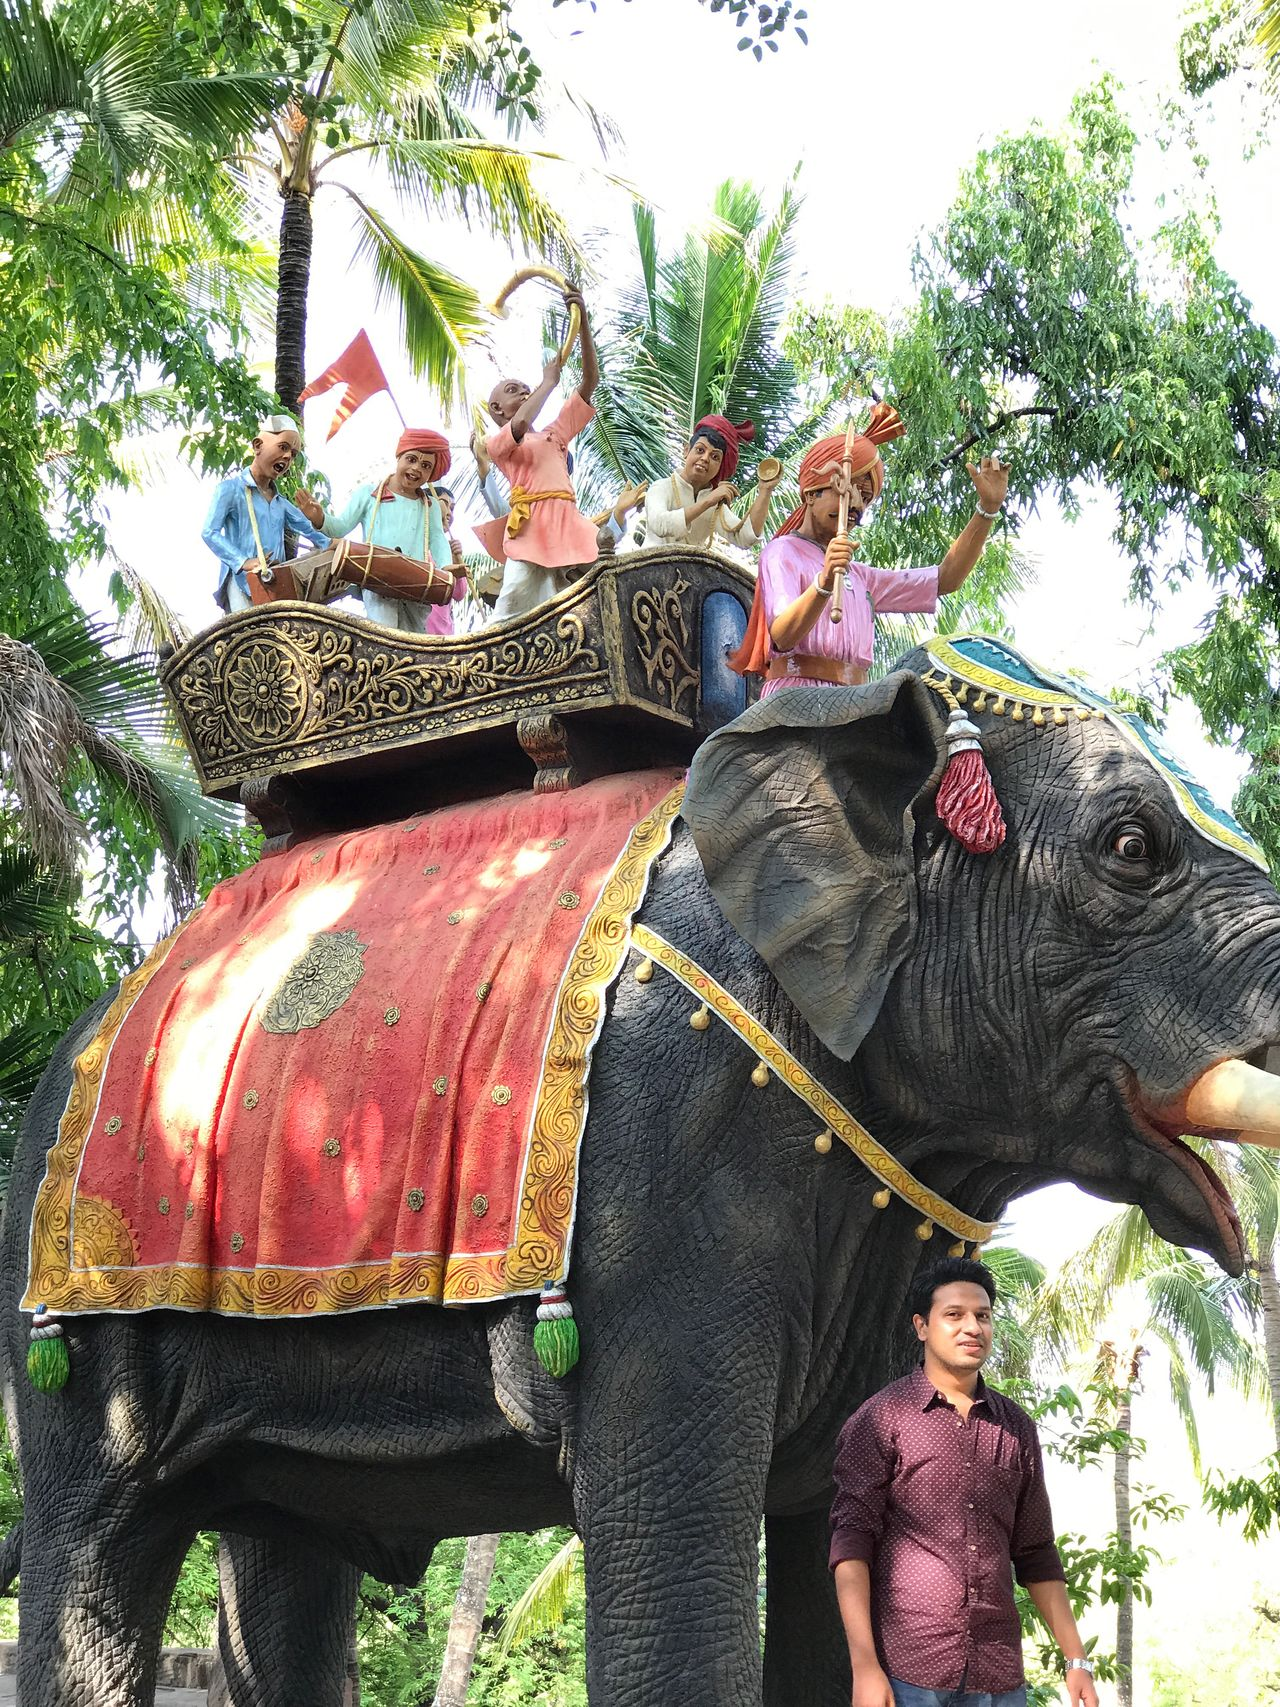 Elephant Mammal Working Animal Indian Elephant Riding Domestic Animals Tree Outdoors One Animal Adult Day Lifestyles Real People Sitting Women Men Adults Only Palm Tree Safari Animals Animal Trunk